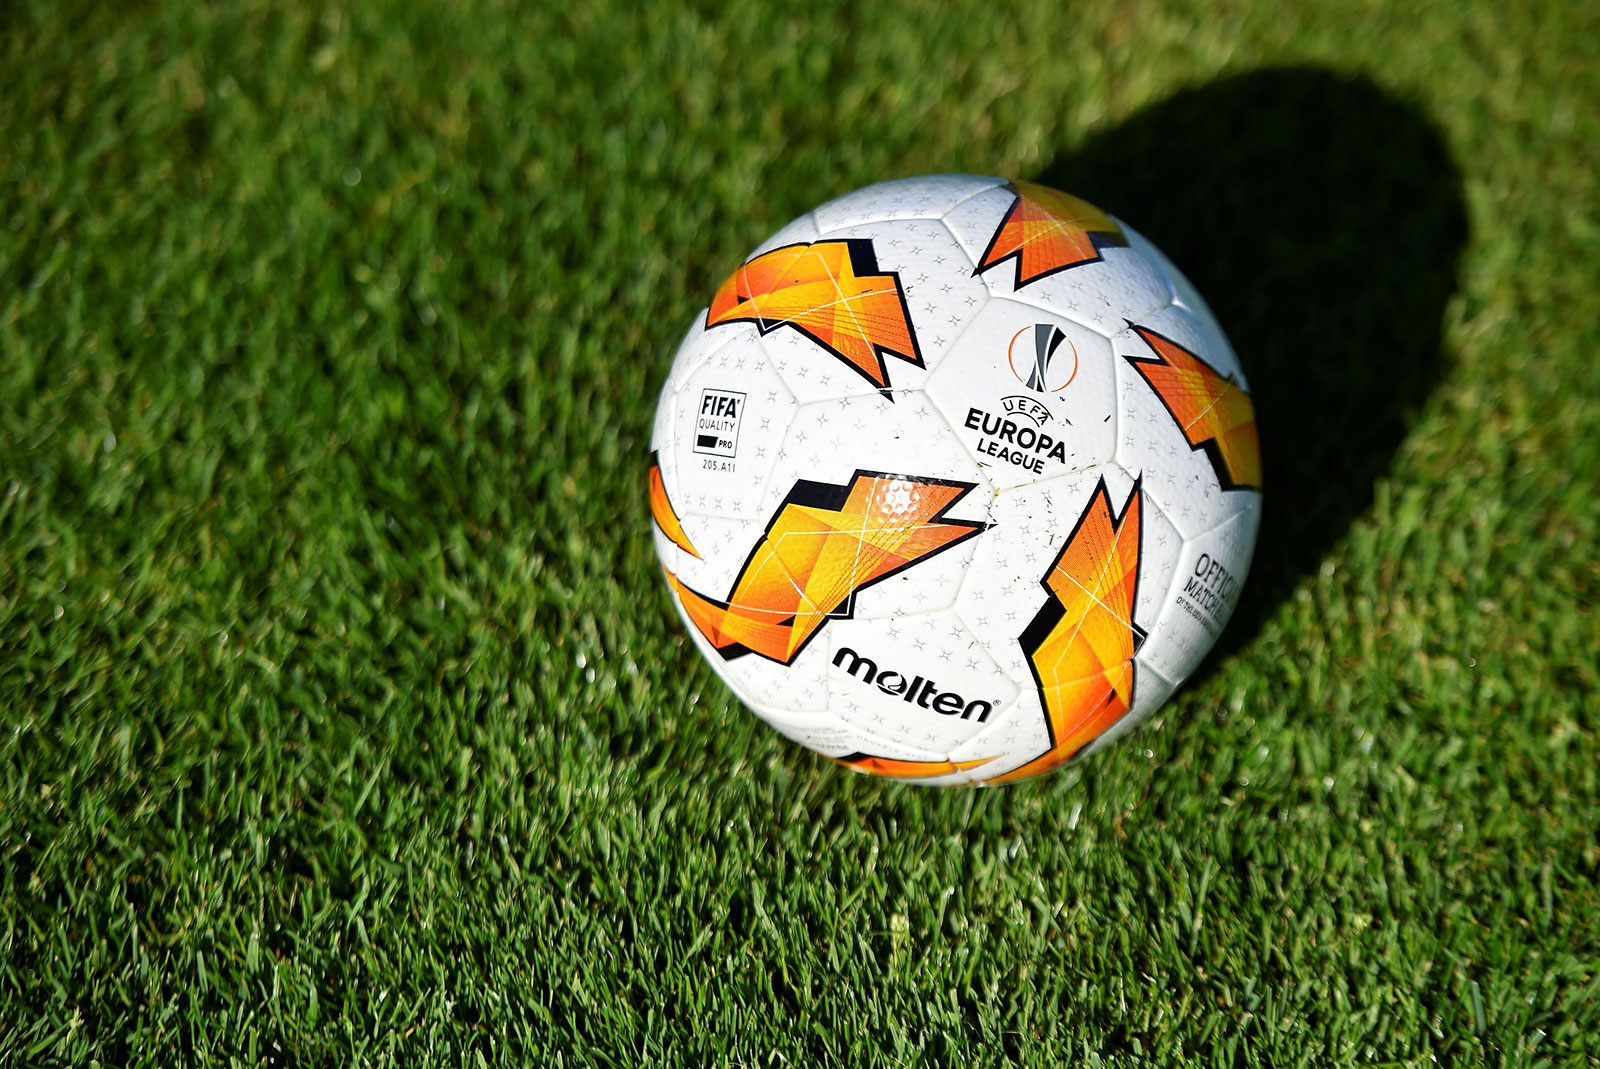 A UEFA Europa League football on the field during F91 Dudelange training session at Stade Aloyse Meyer on September 17, 2018. (JEAN-CHRISTOPHE VERHAEGEN/AFP/Getty Images)